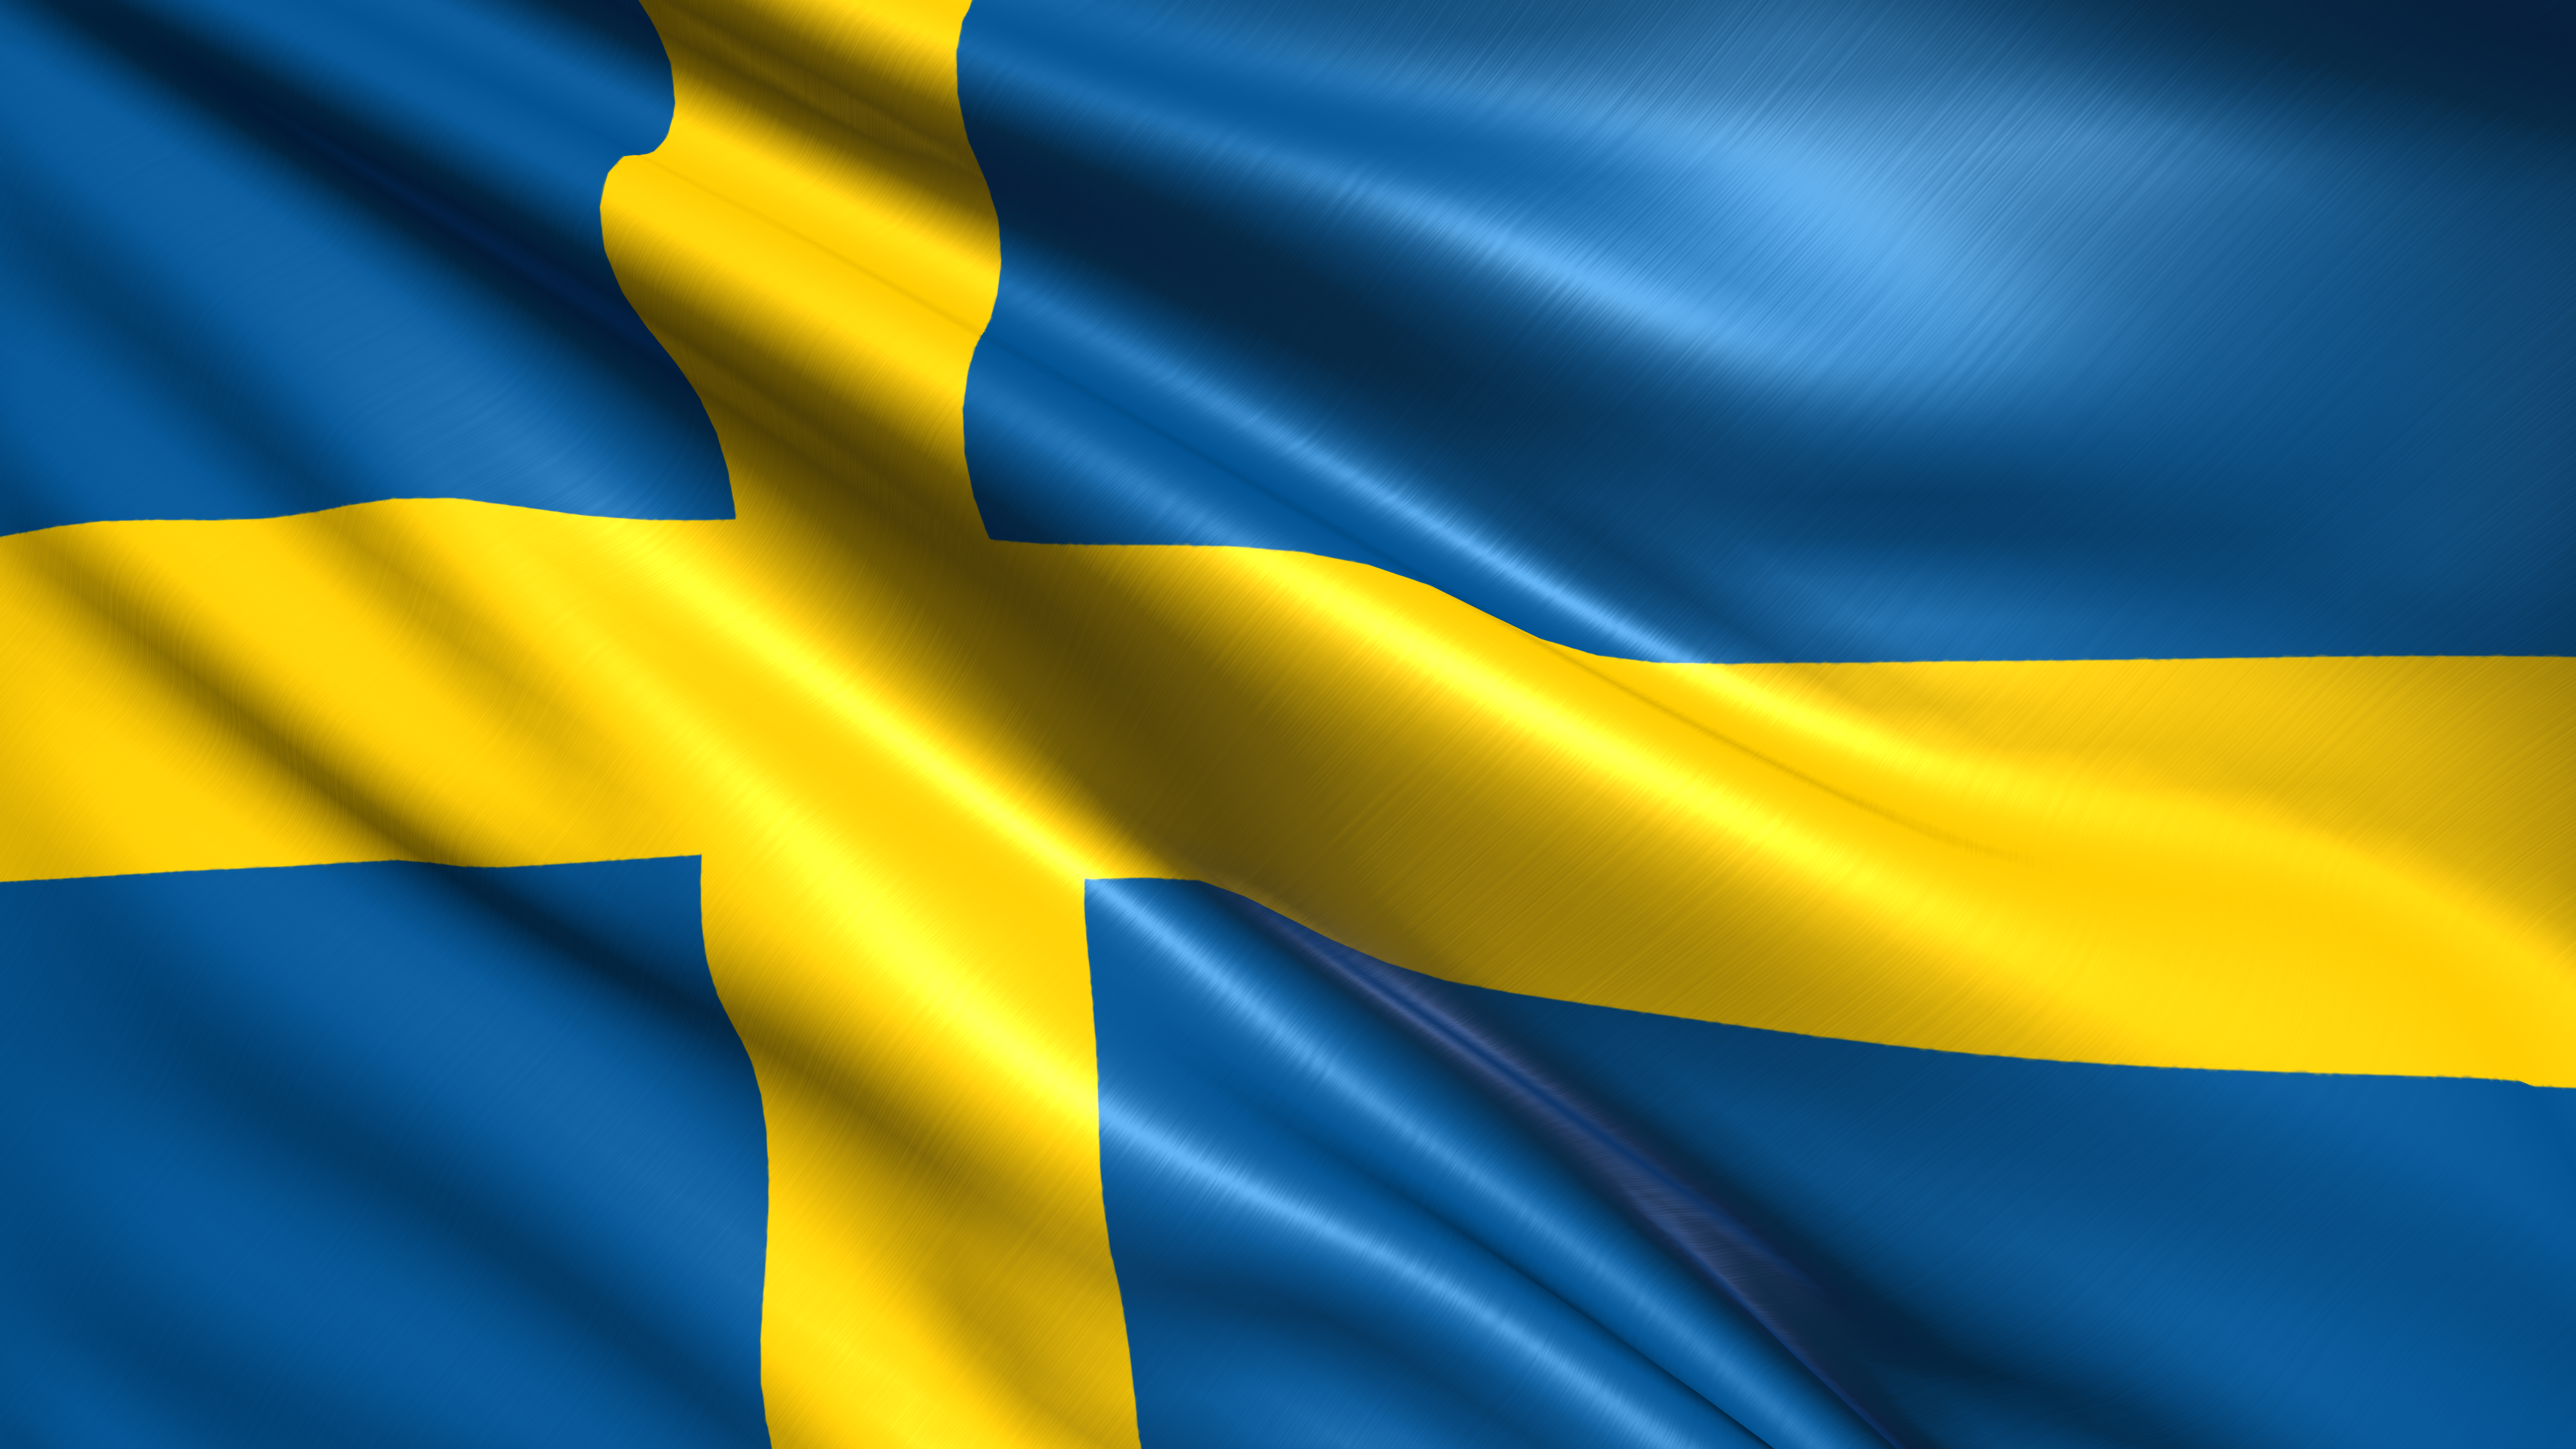 Swedish flag with fabric structure